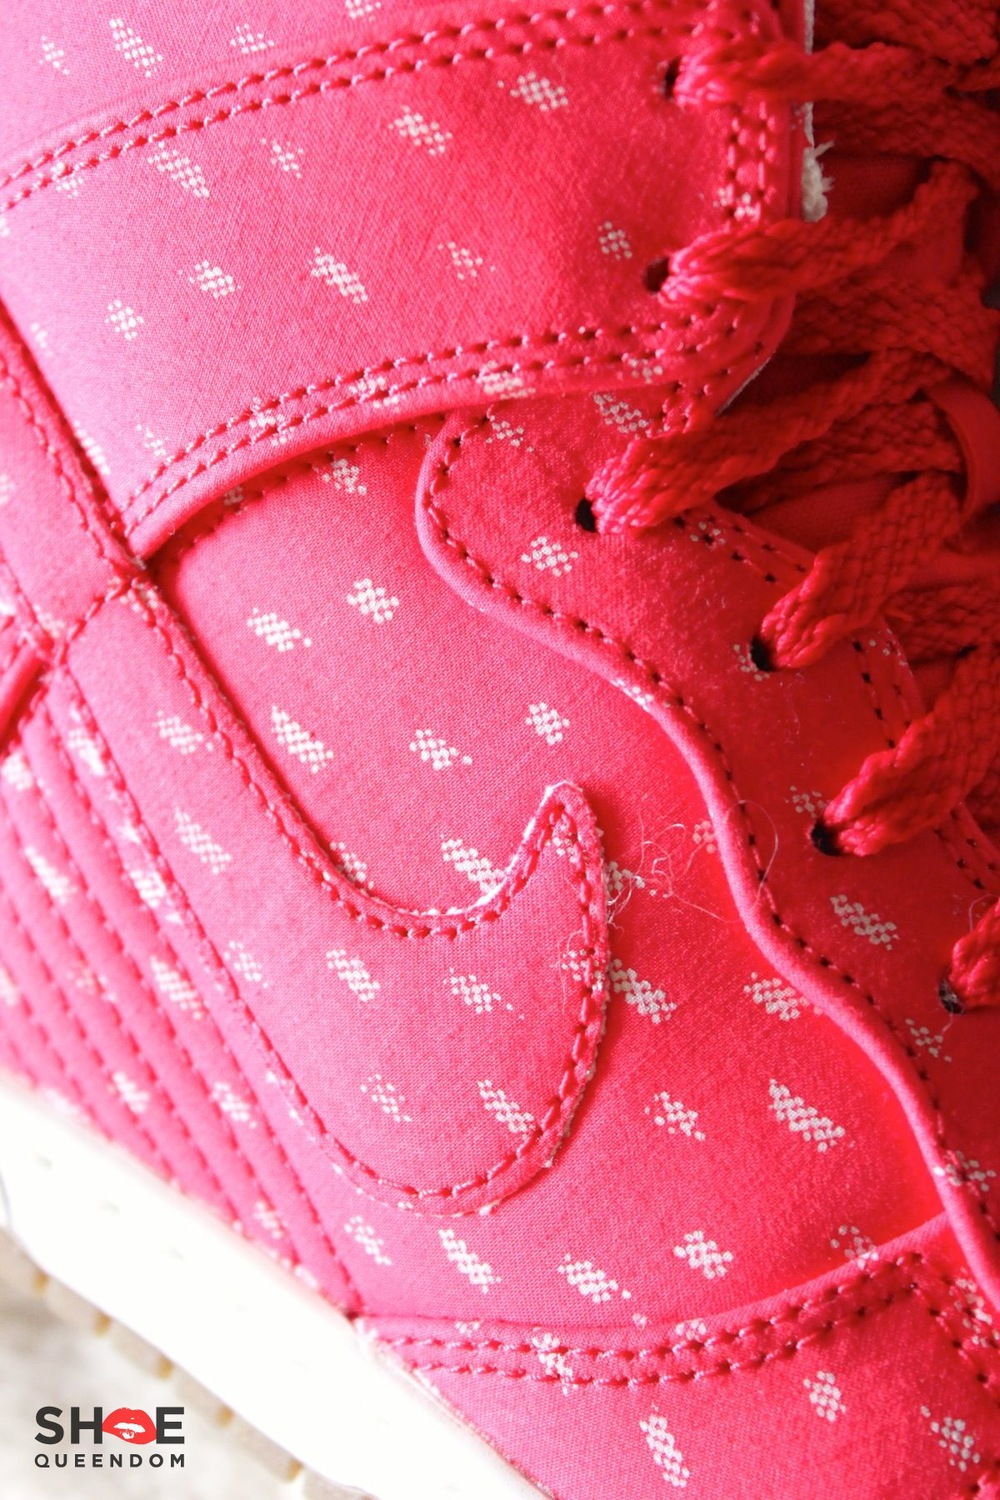 Nike Dunk Wedge Sky Hi Holiday05.jpg